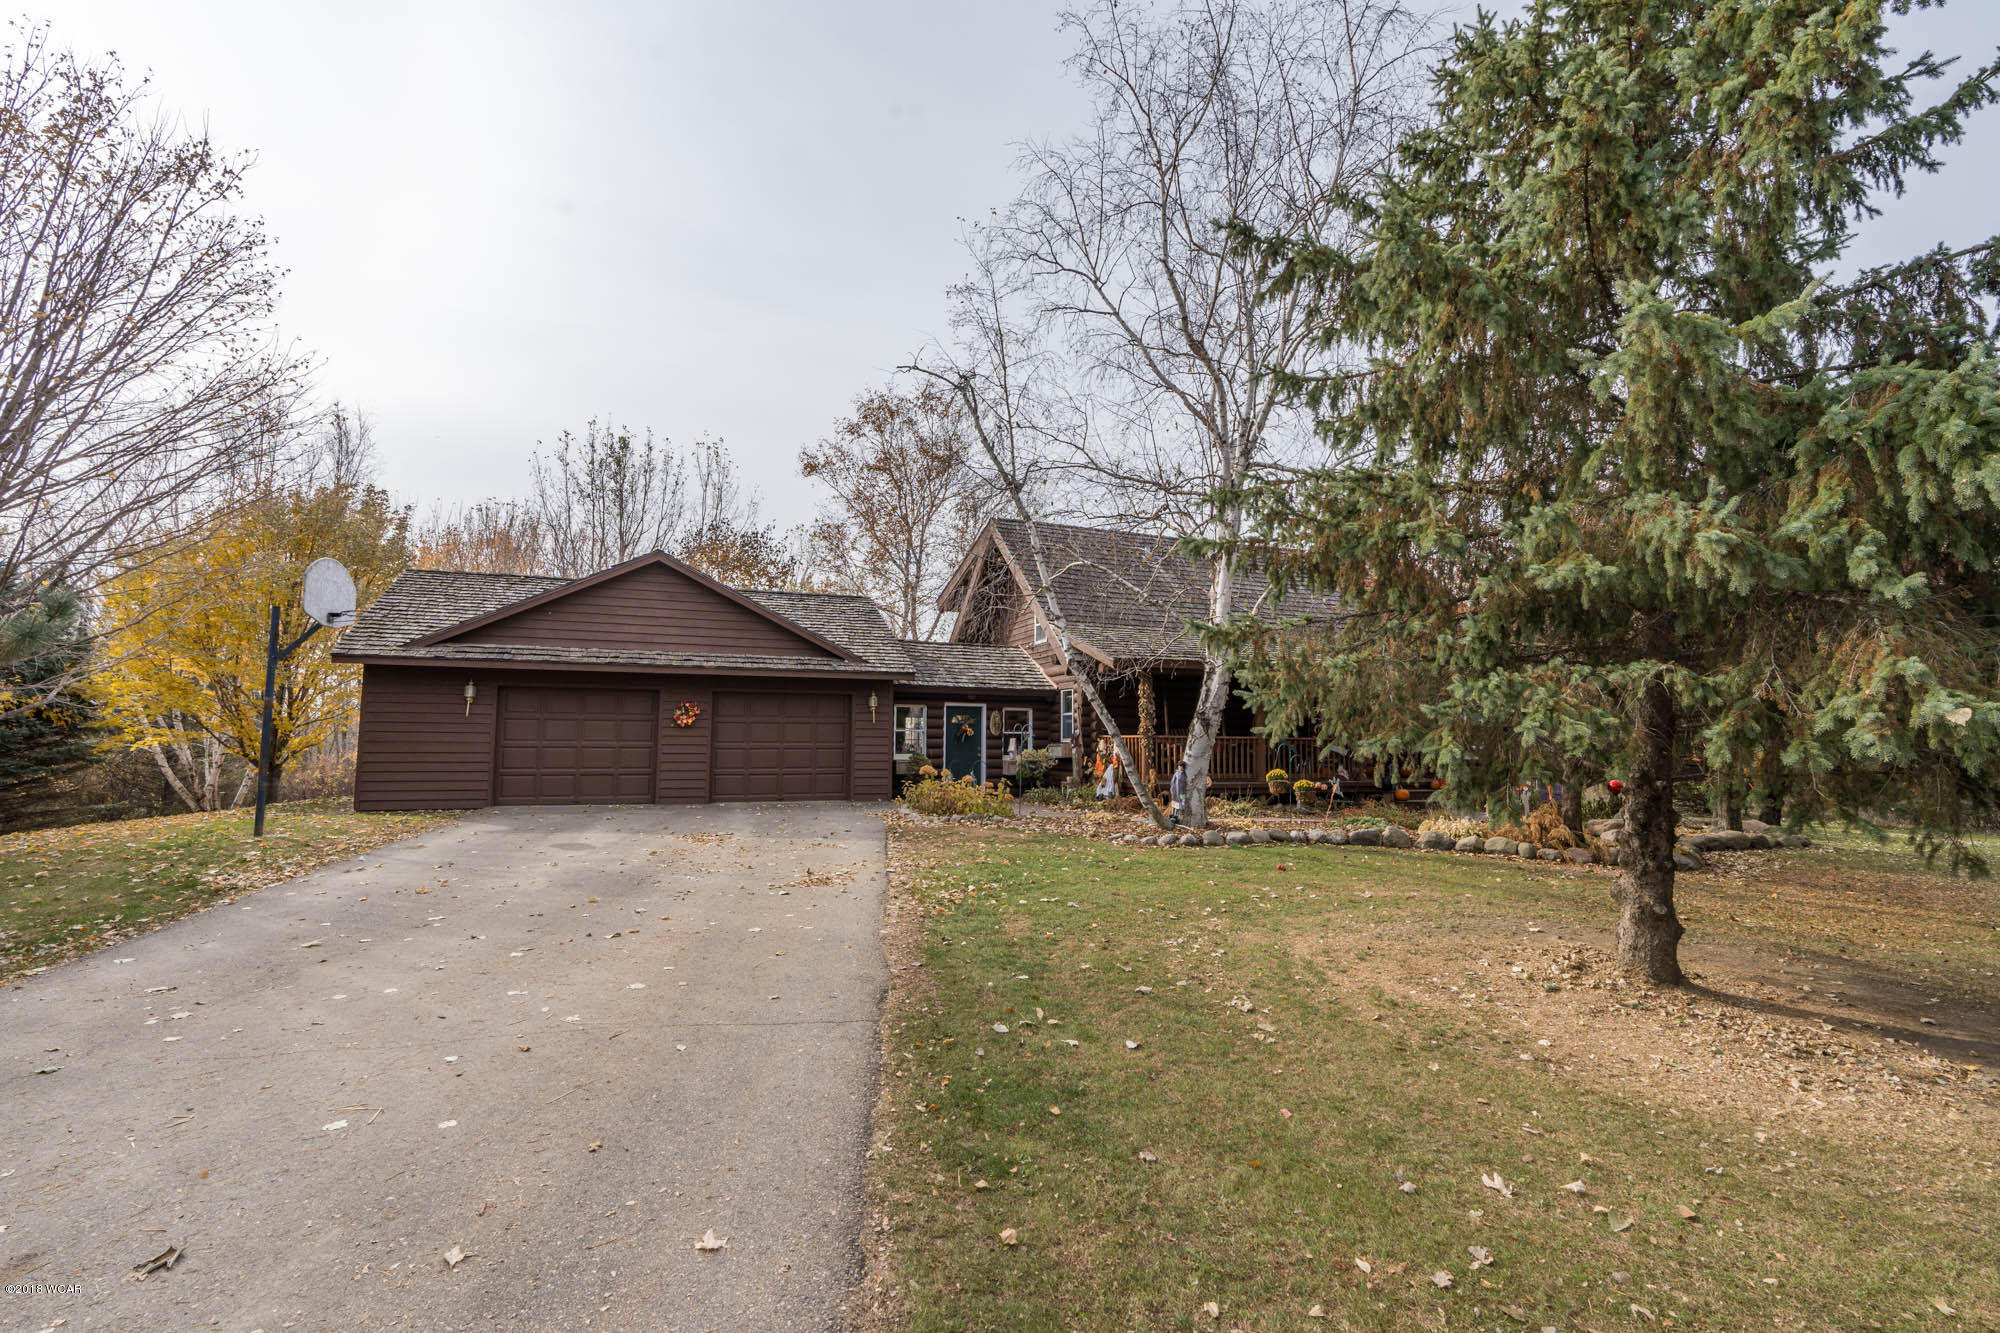 3401 15th Avenue,Willmar,4 Bedrooms Bedrooms,3 BathroomsBathrooms,Single Family,15th Avenue,6032426